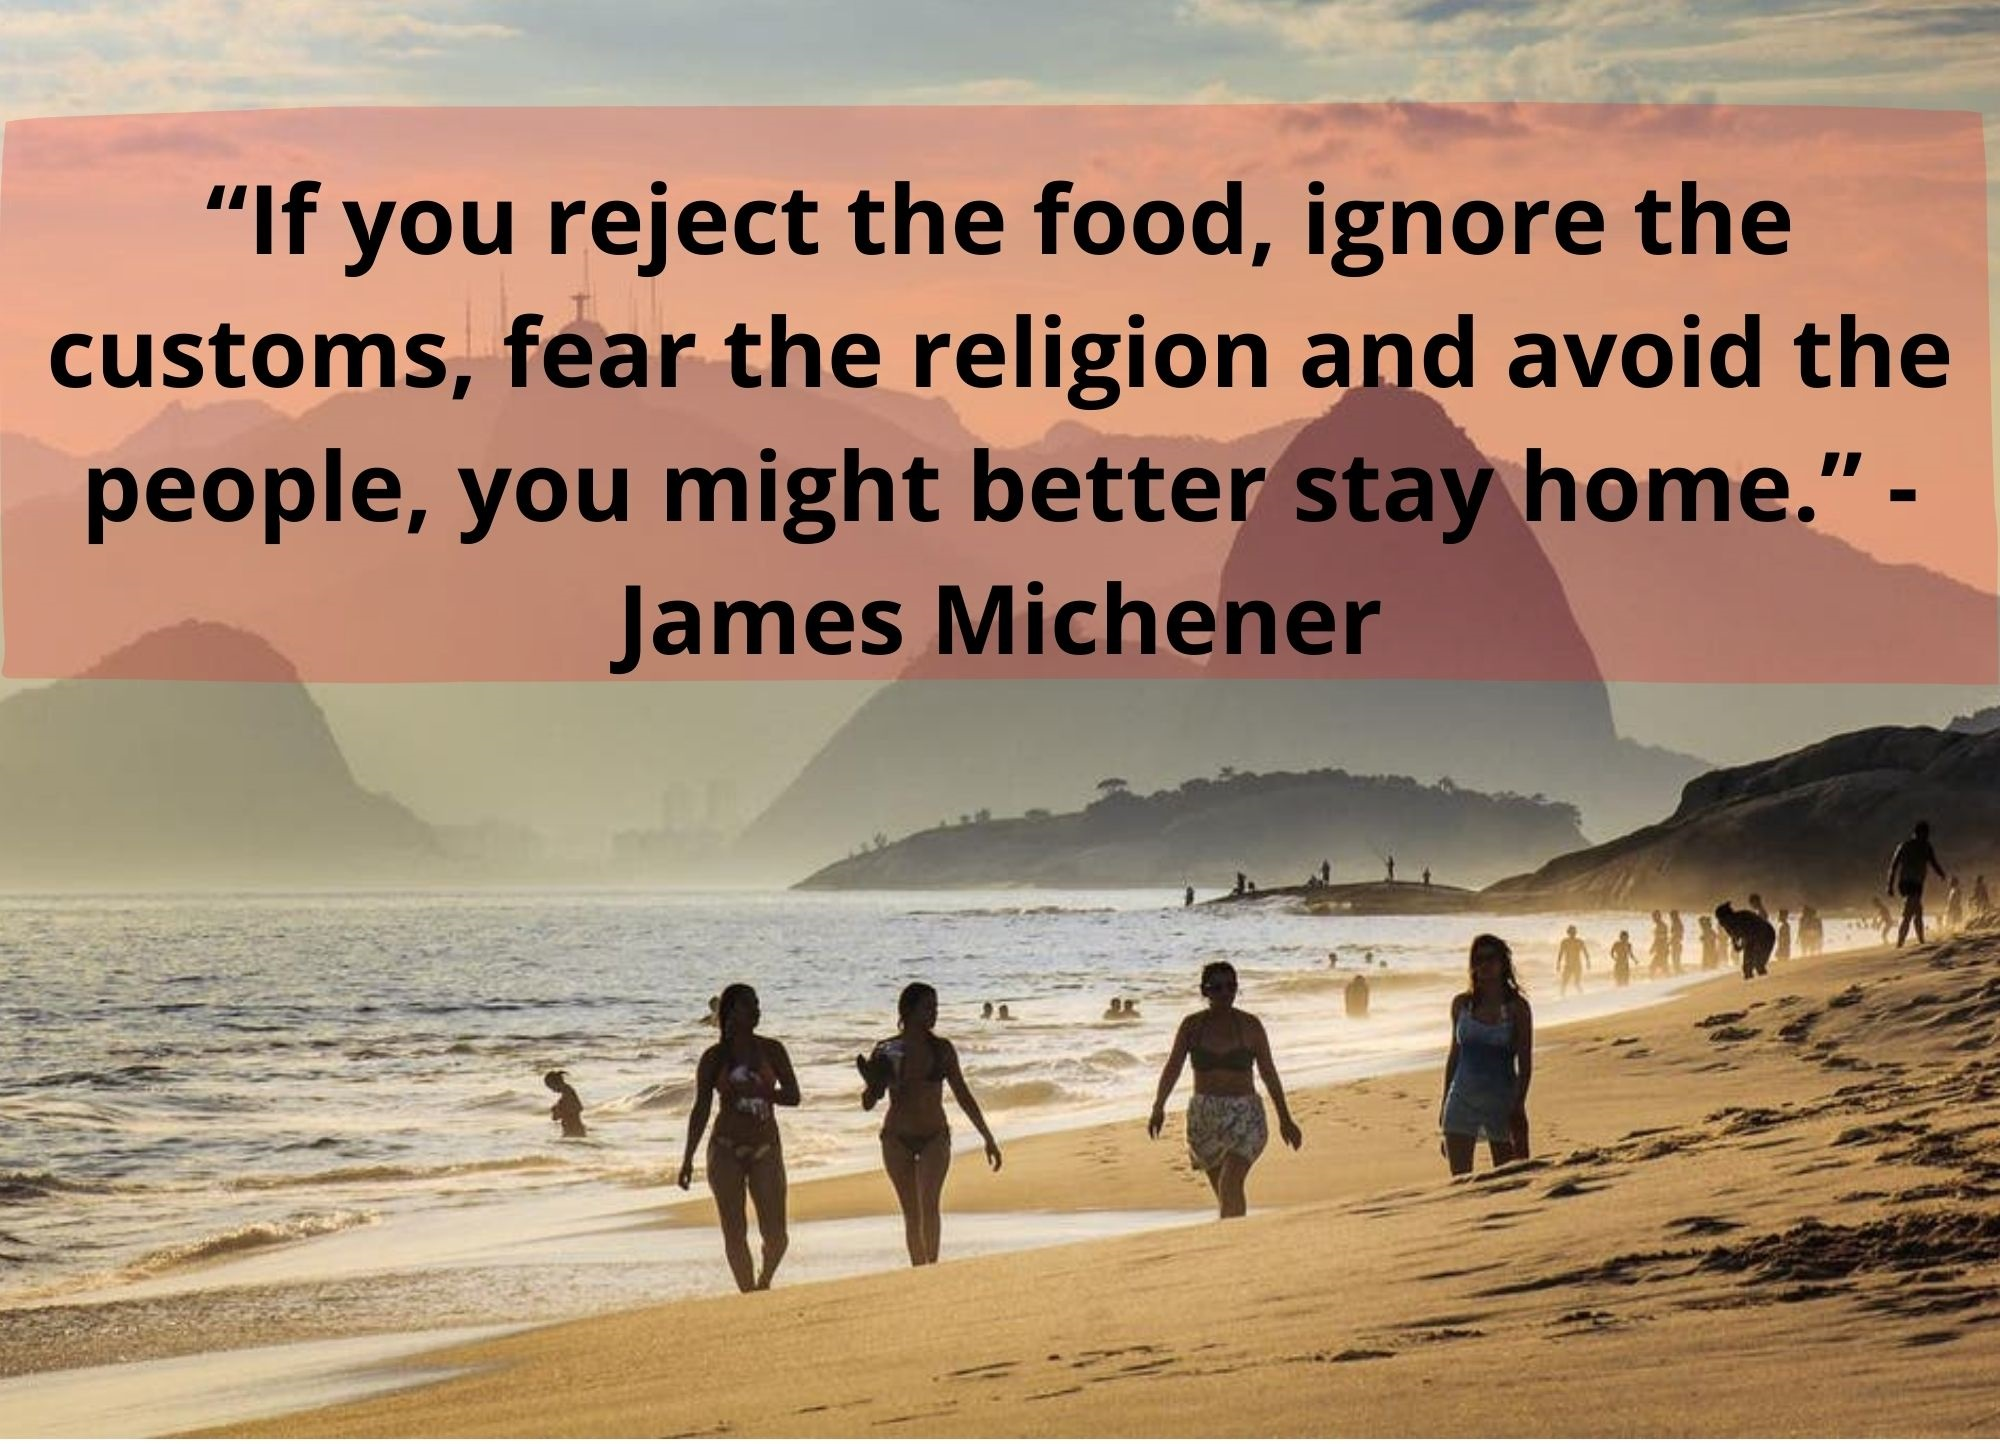 """If you reject the food, ignore the customs, fear the religion and avoid the people, you might better stay home."" -James Michener"